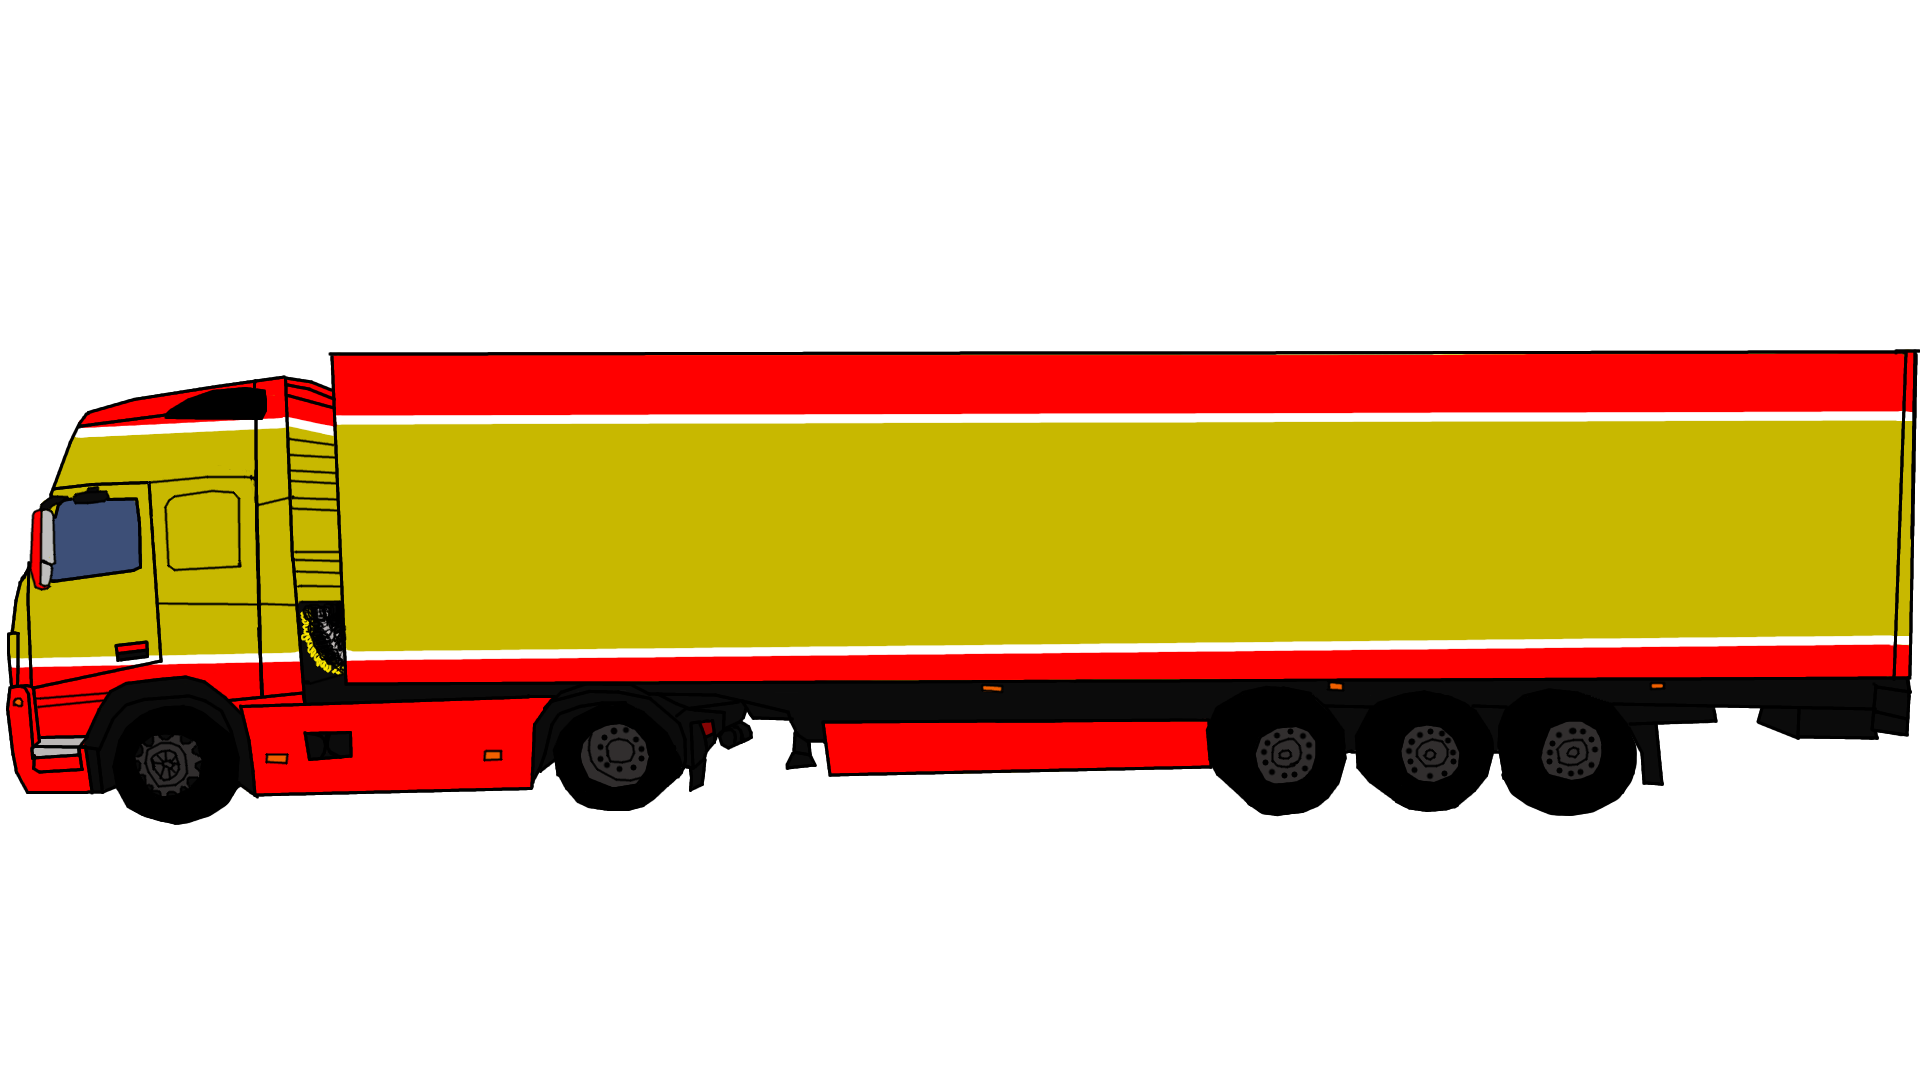 1920x1080 Collection Of Semi Truck Side View Clipart High Quality